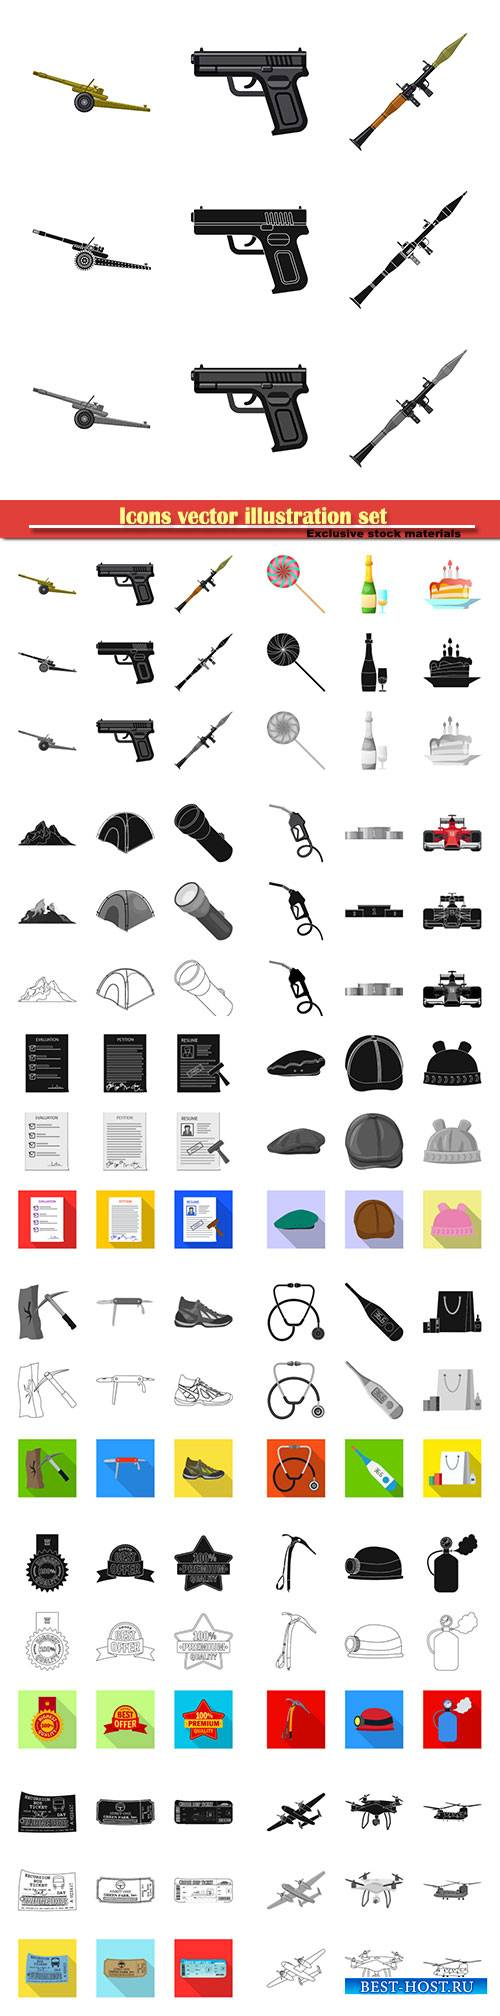 Icons vector illustration set # 3